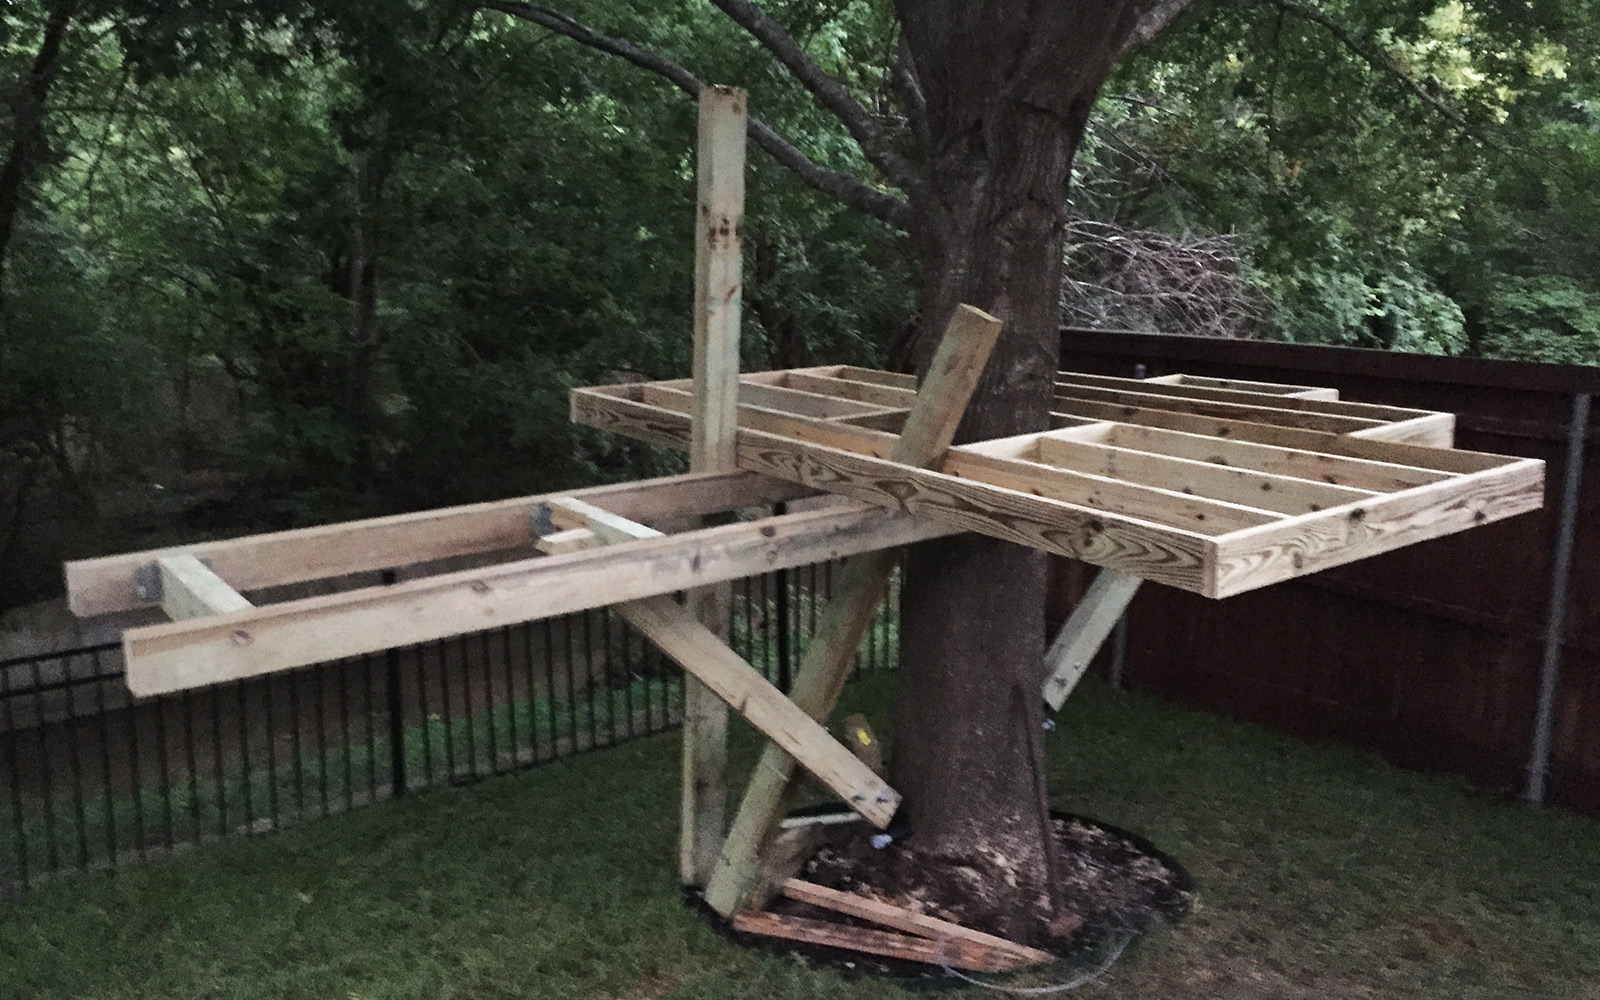 Building A Treehouse My Thoughts And Learnings Purveyor Of Awesome Brian Pierce